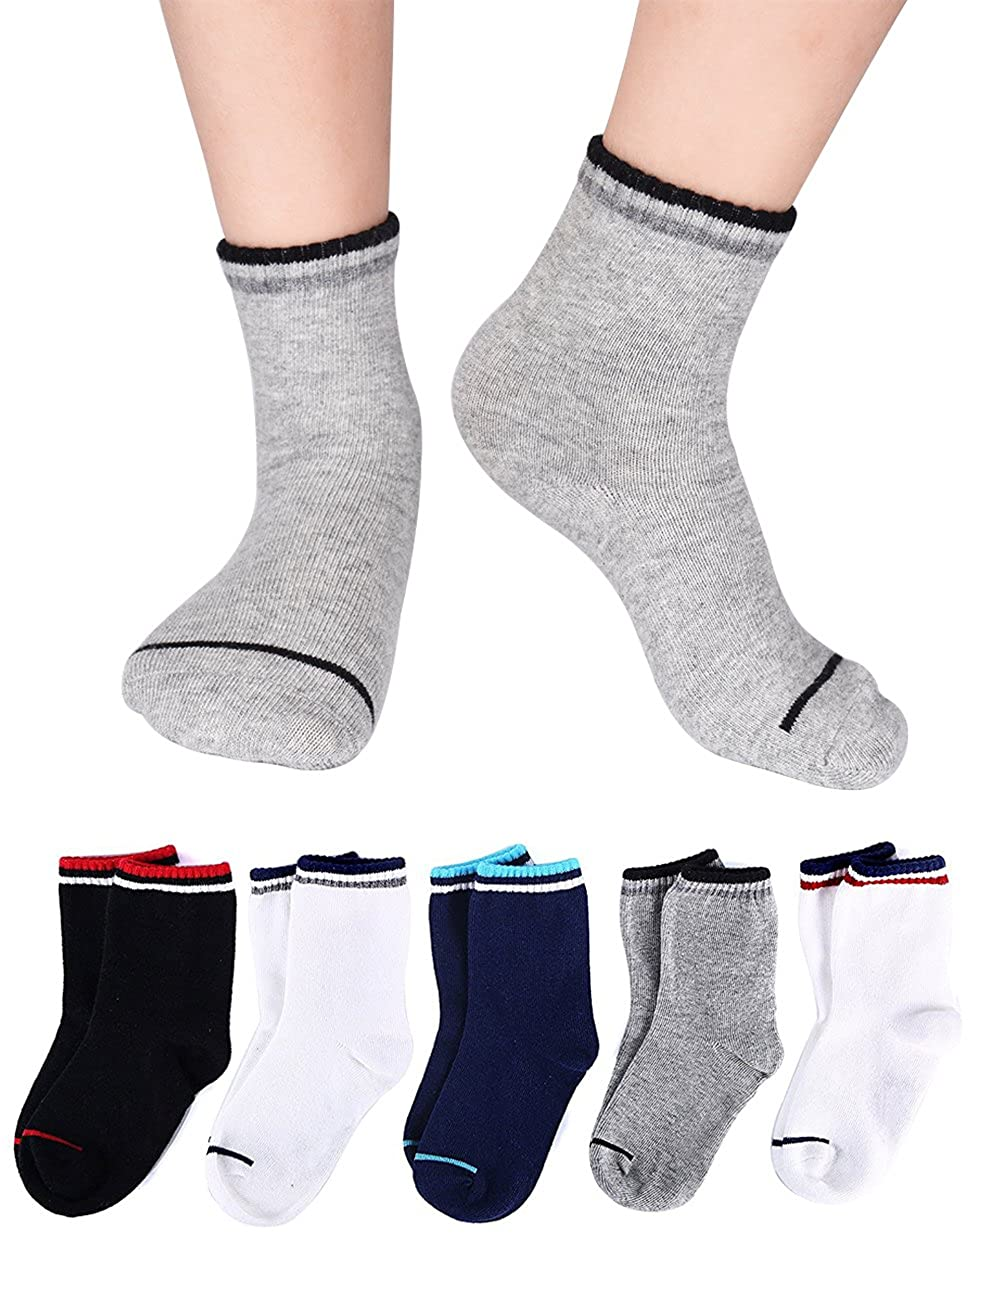 Kids Socks Sports Athletic Crew Cotton Quarter Striped Seamless Cushion for 3t 4t-8t Boys Girls Baby Toddler 10/12 Pair Pack M-MAX MMAXSOCKSN0730